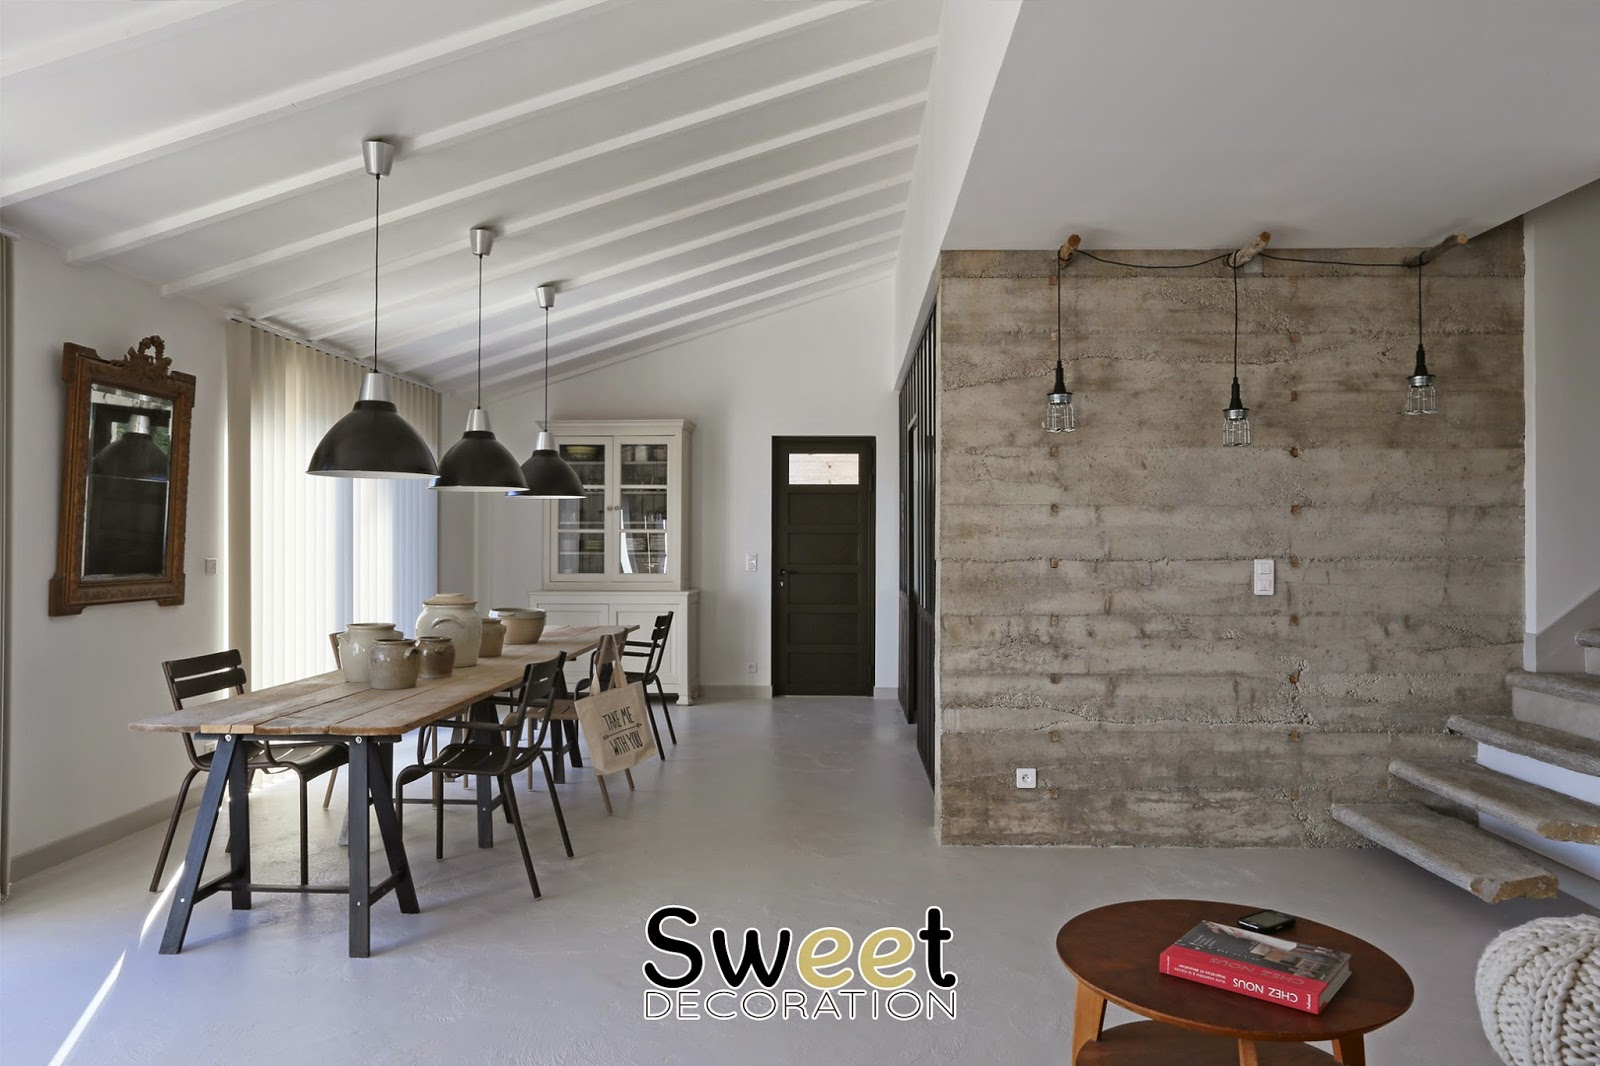 Am nagement int rieur d 39 une maison contemporaine sweet for Interieur maison design contemporain